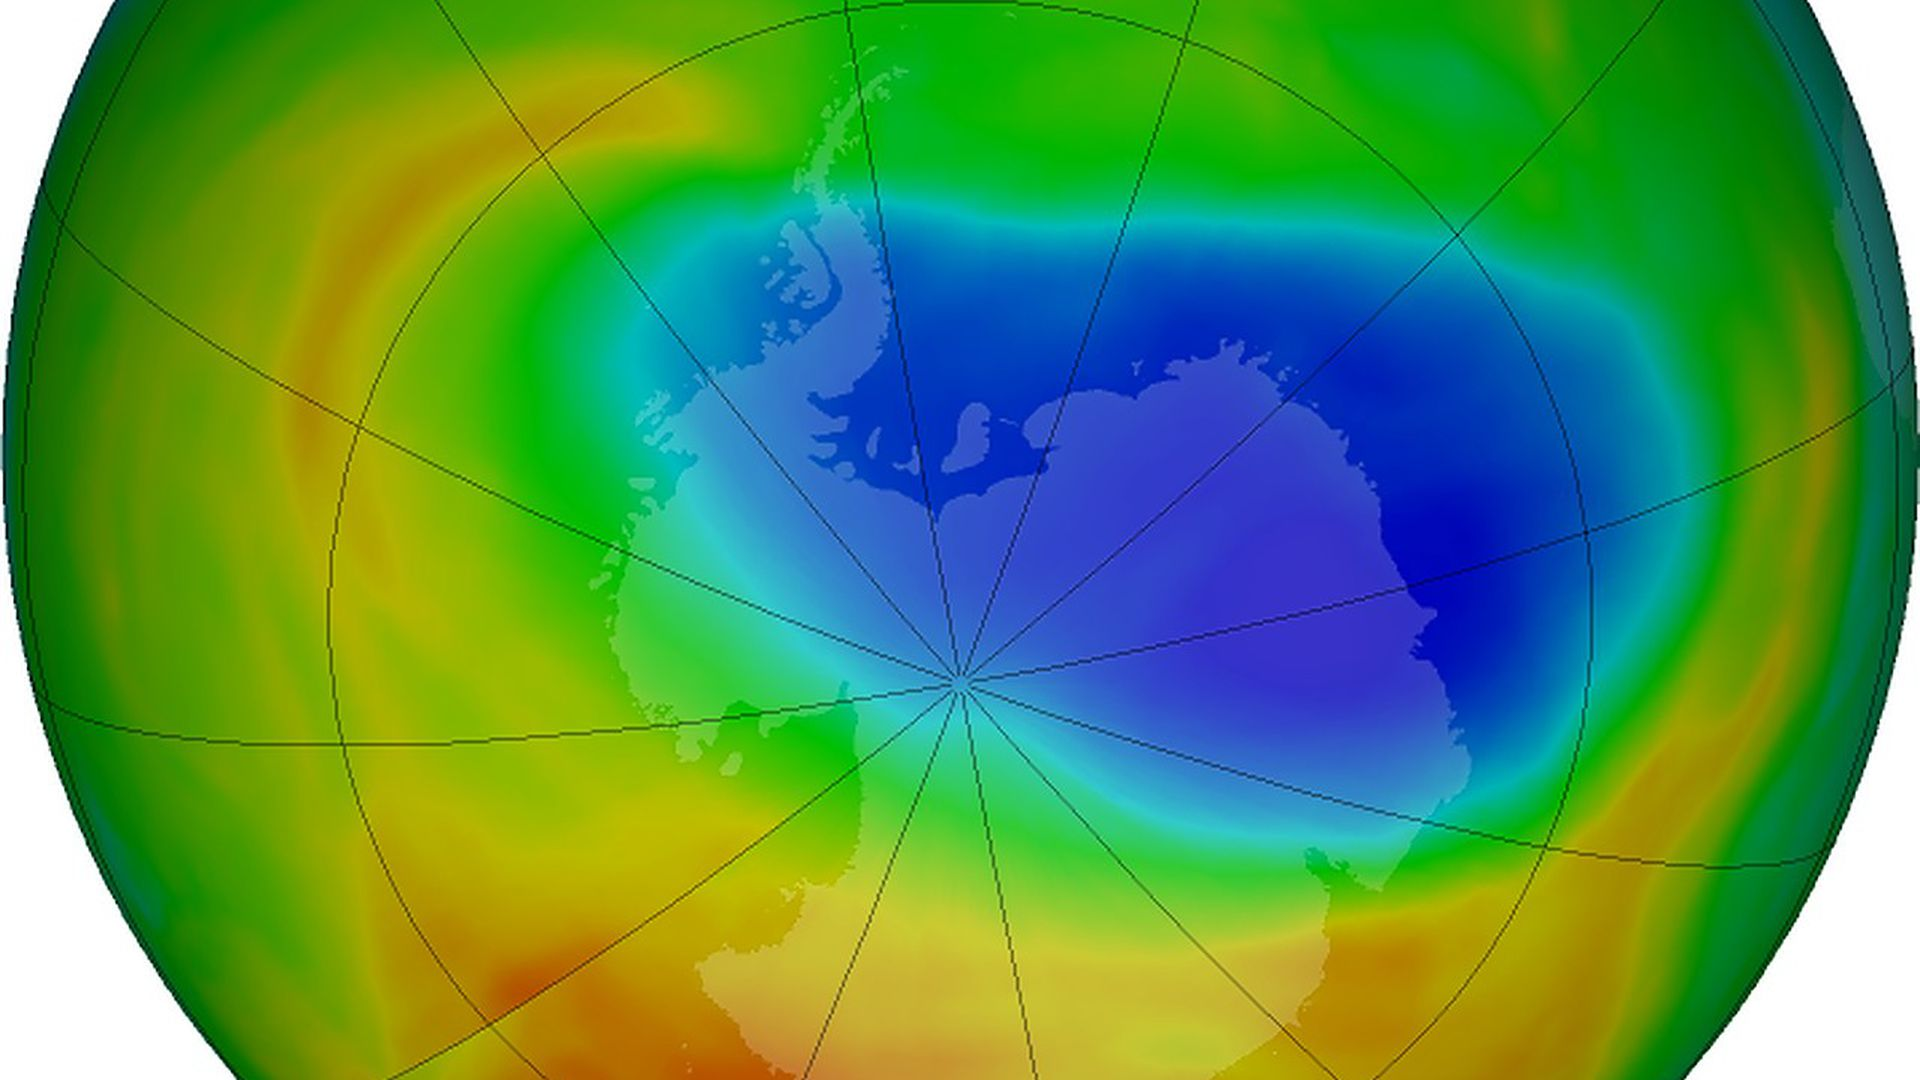 A NASA image of the hole in the ozone layer over Antarctica.